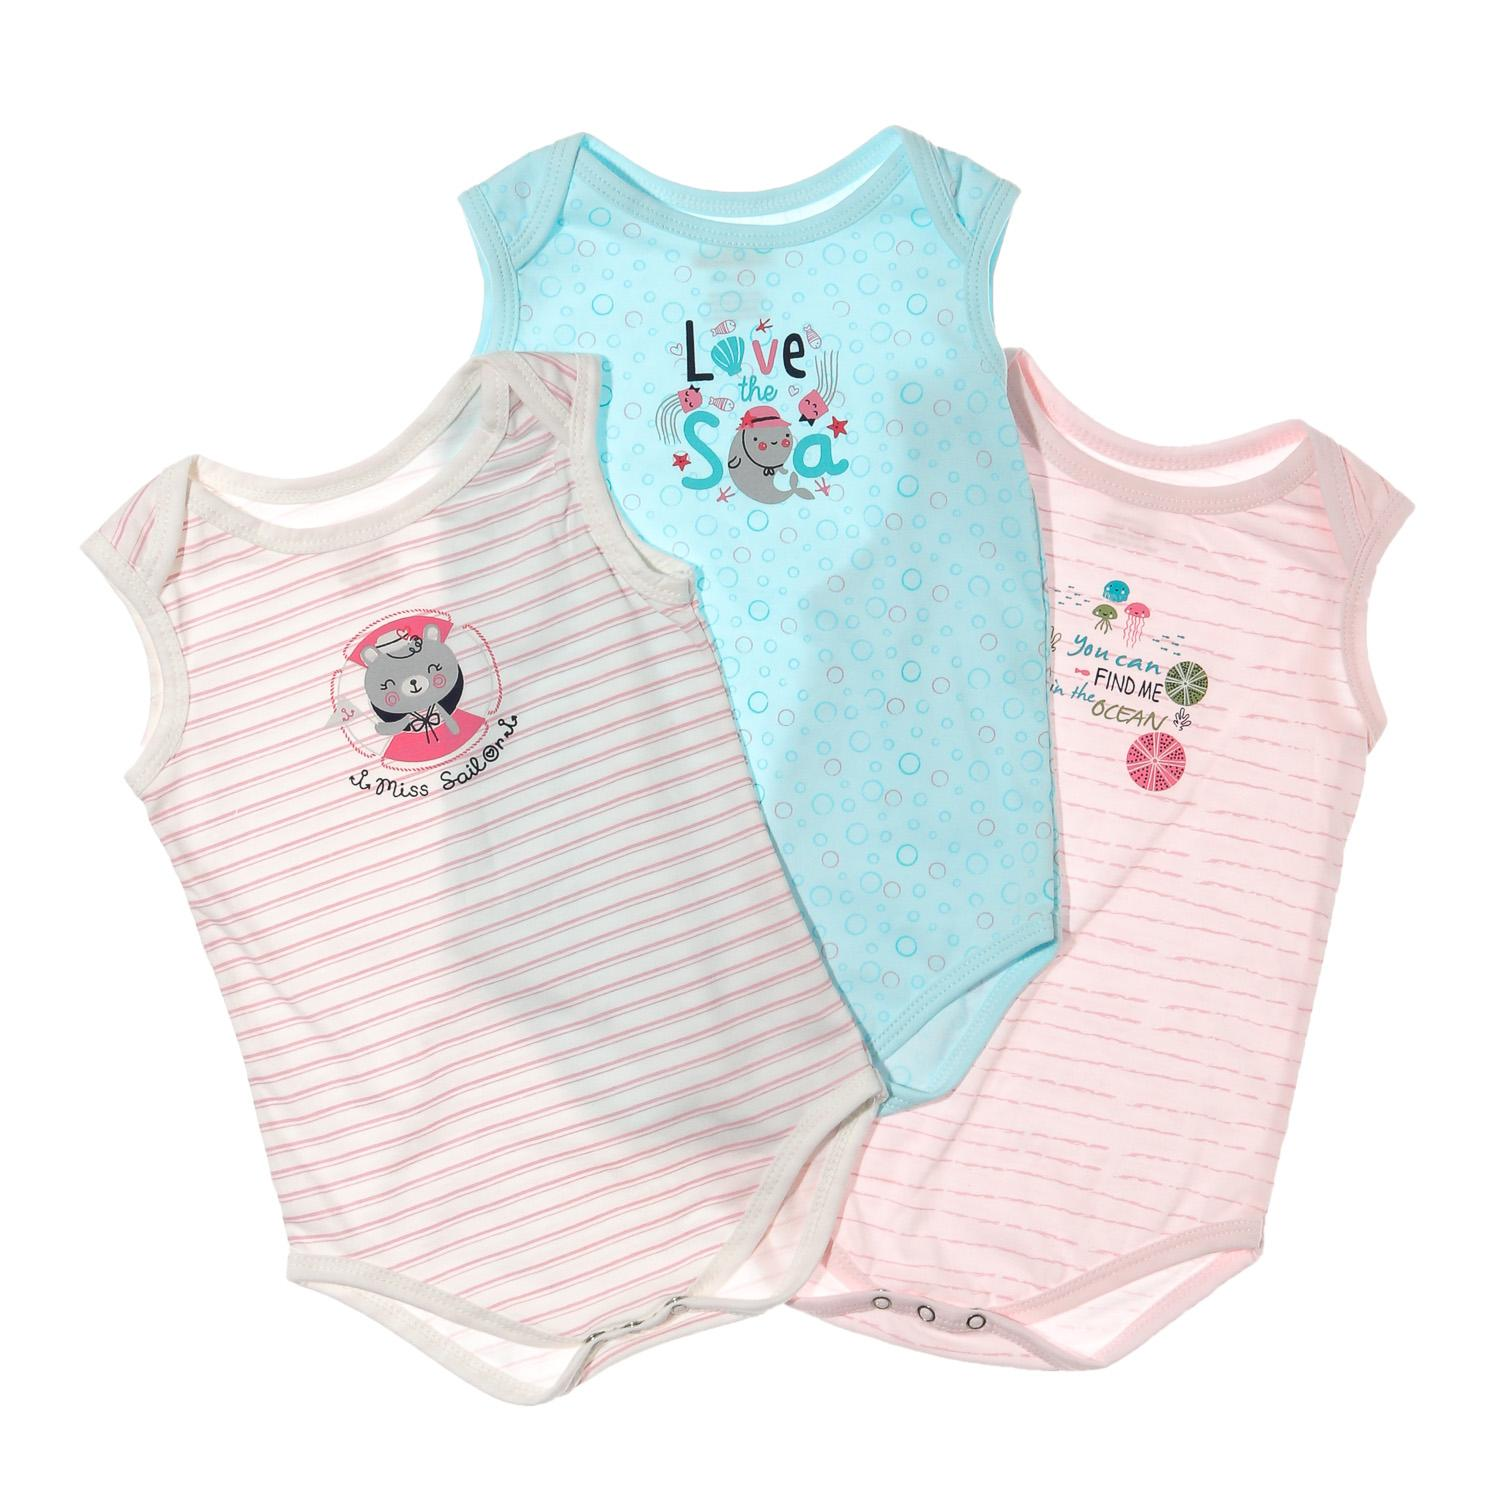 8db2dc0015f4 Girls Clothing and Accessories for sale - Baby Clothing Accessories ...